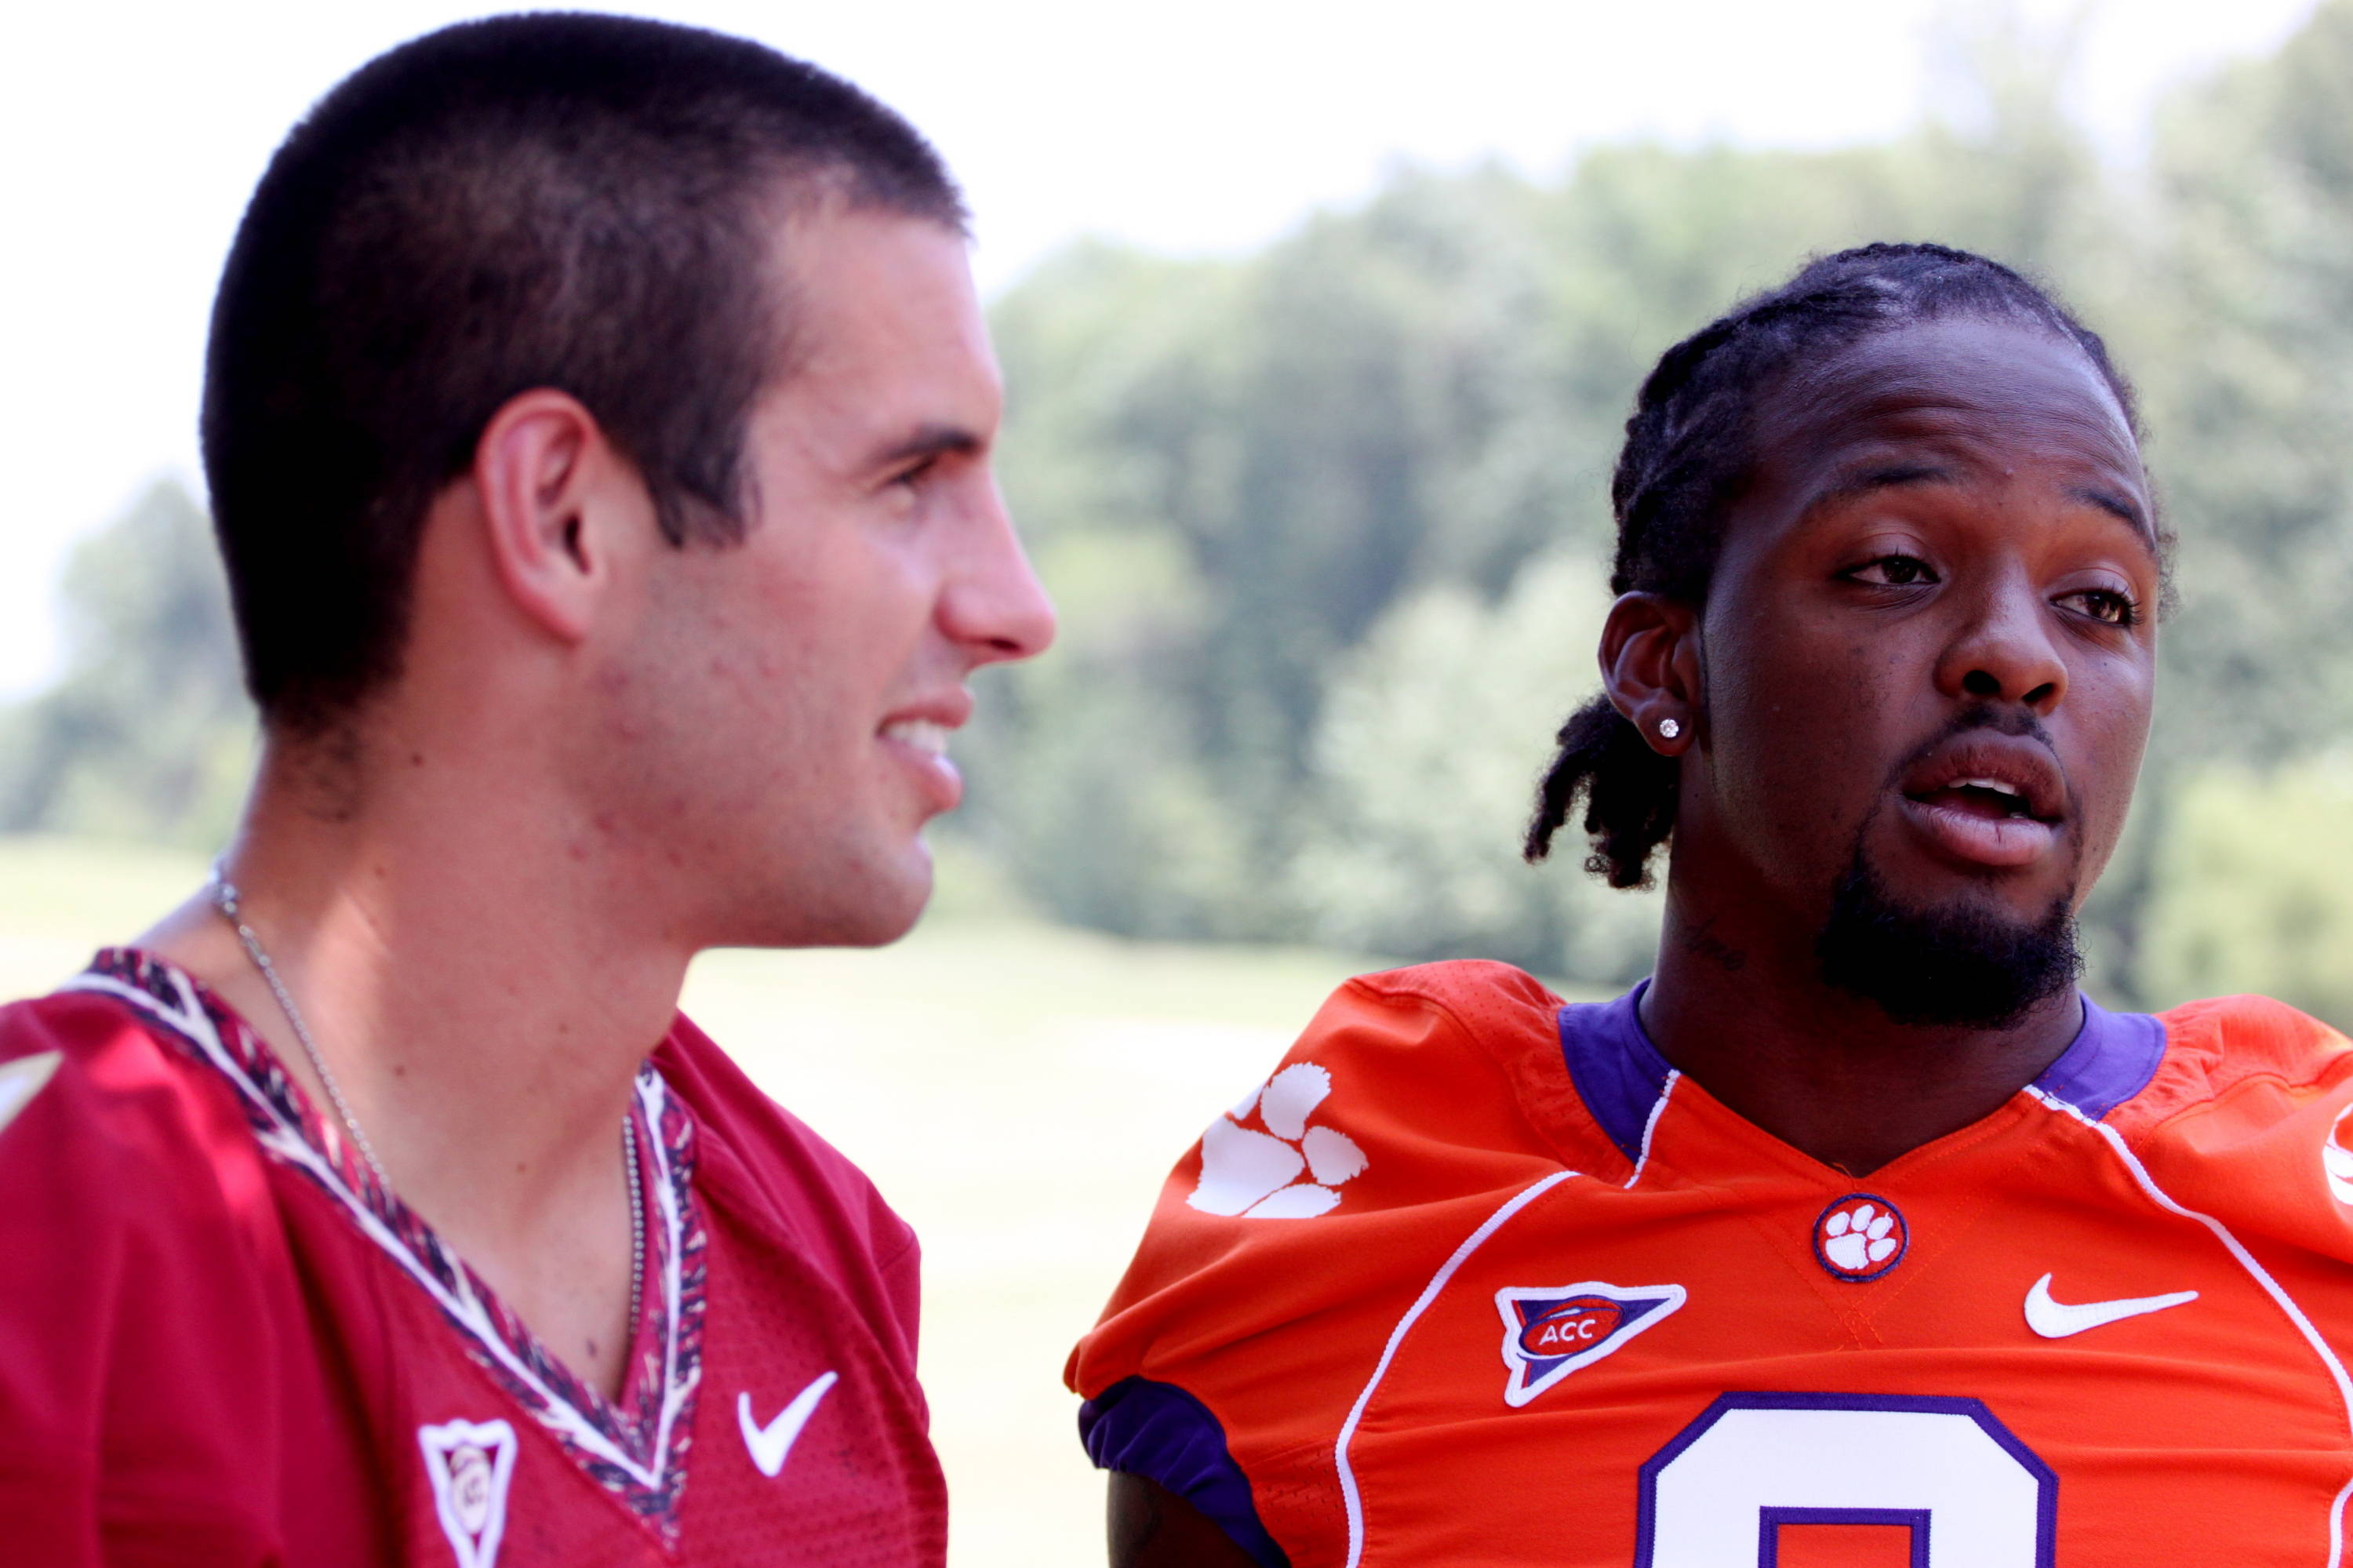 Christian Ponder and Clemson Tiger's safety DeAndre McDaniel.